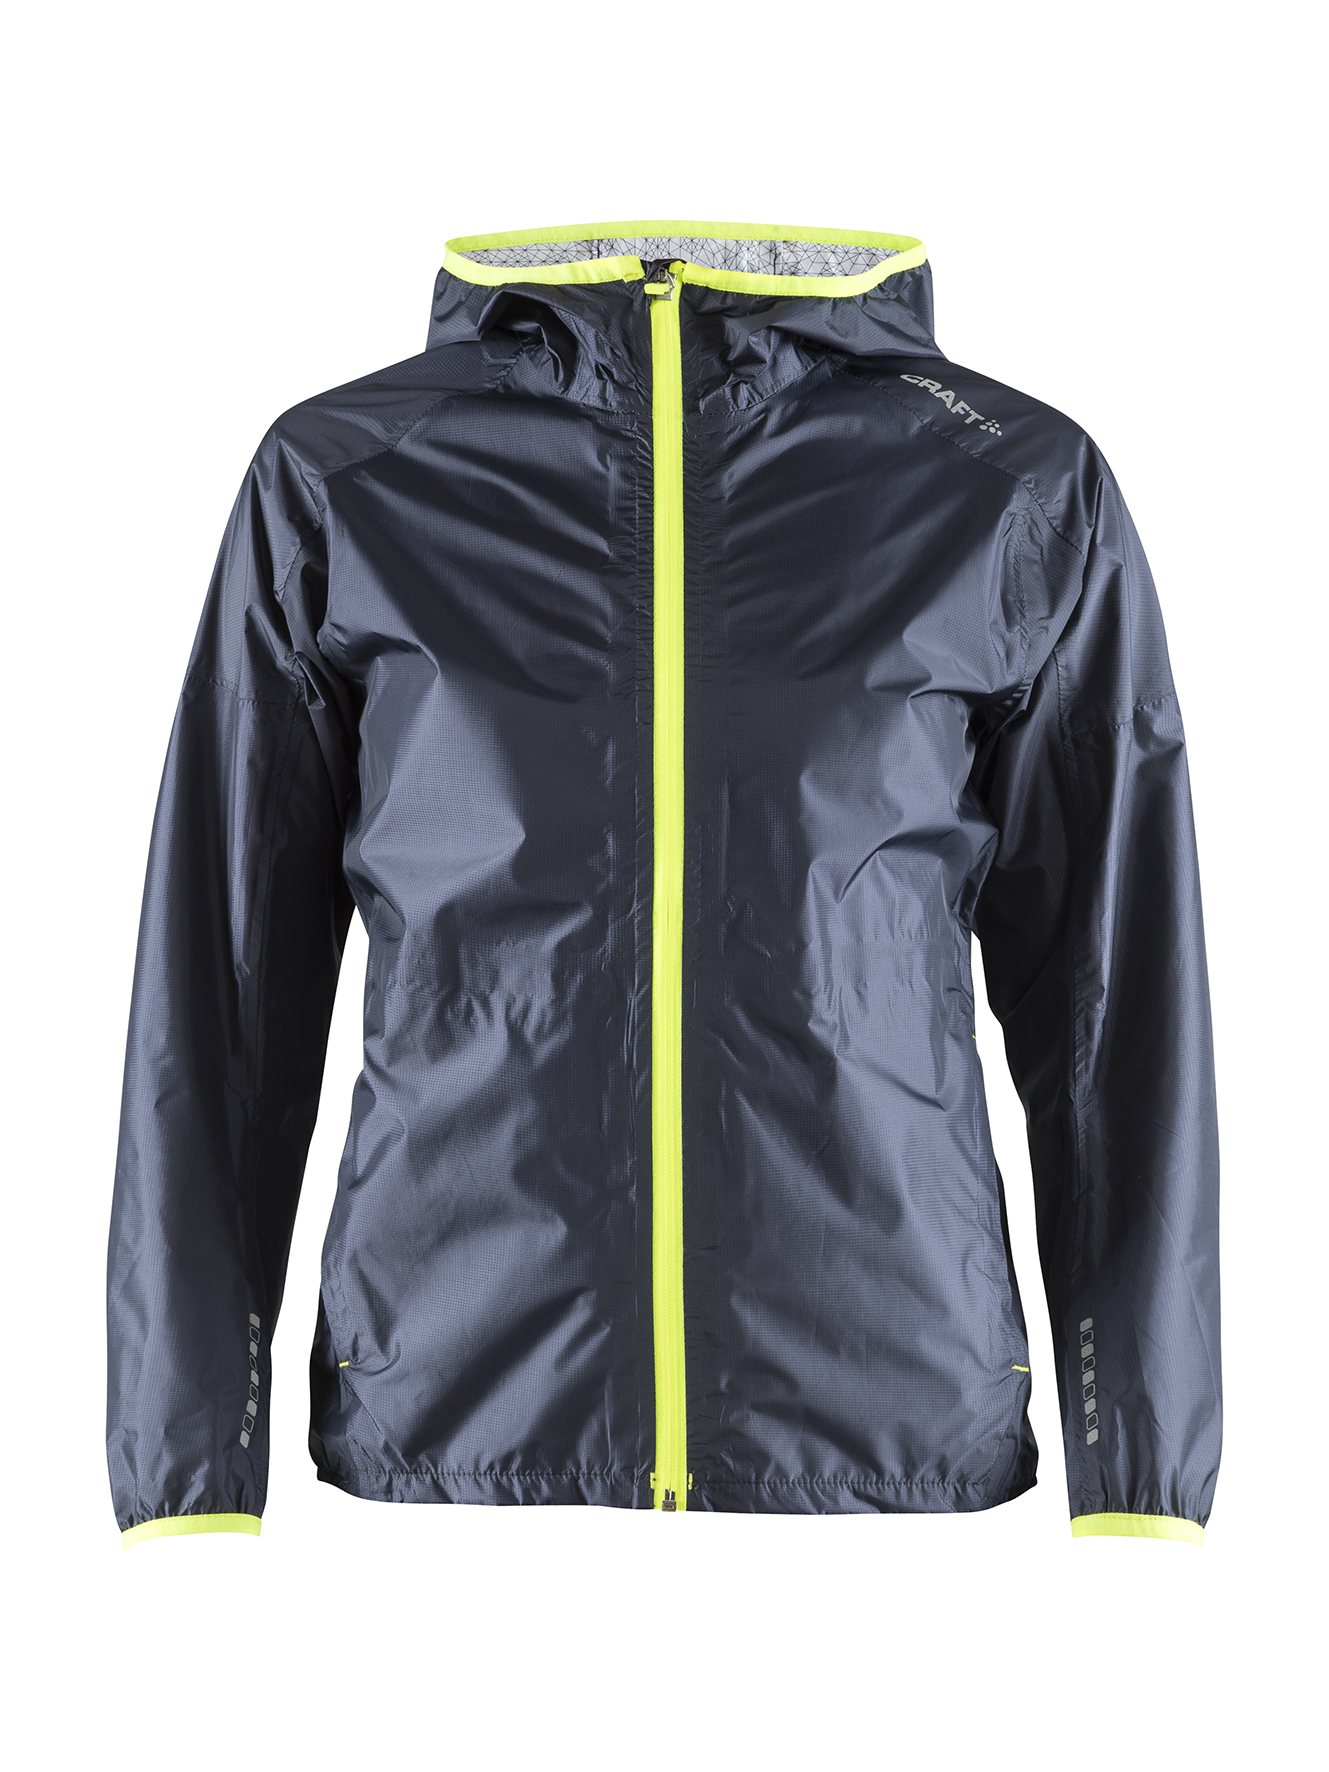 CRAFT 2.5L SHELL JACKET GRAVEL Veste Running étanche femme